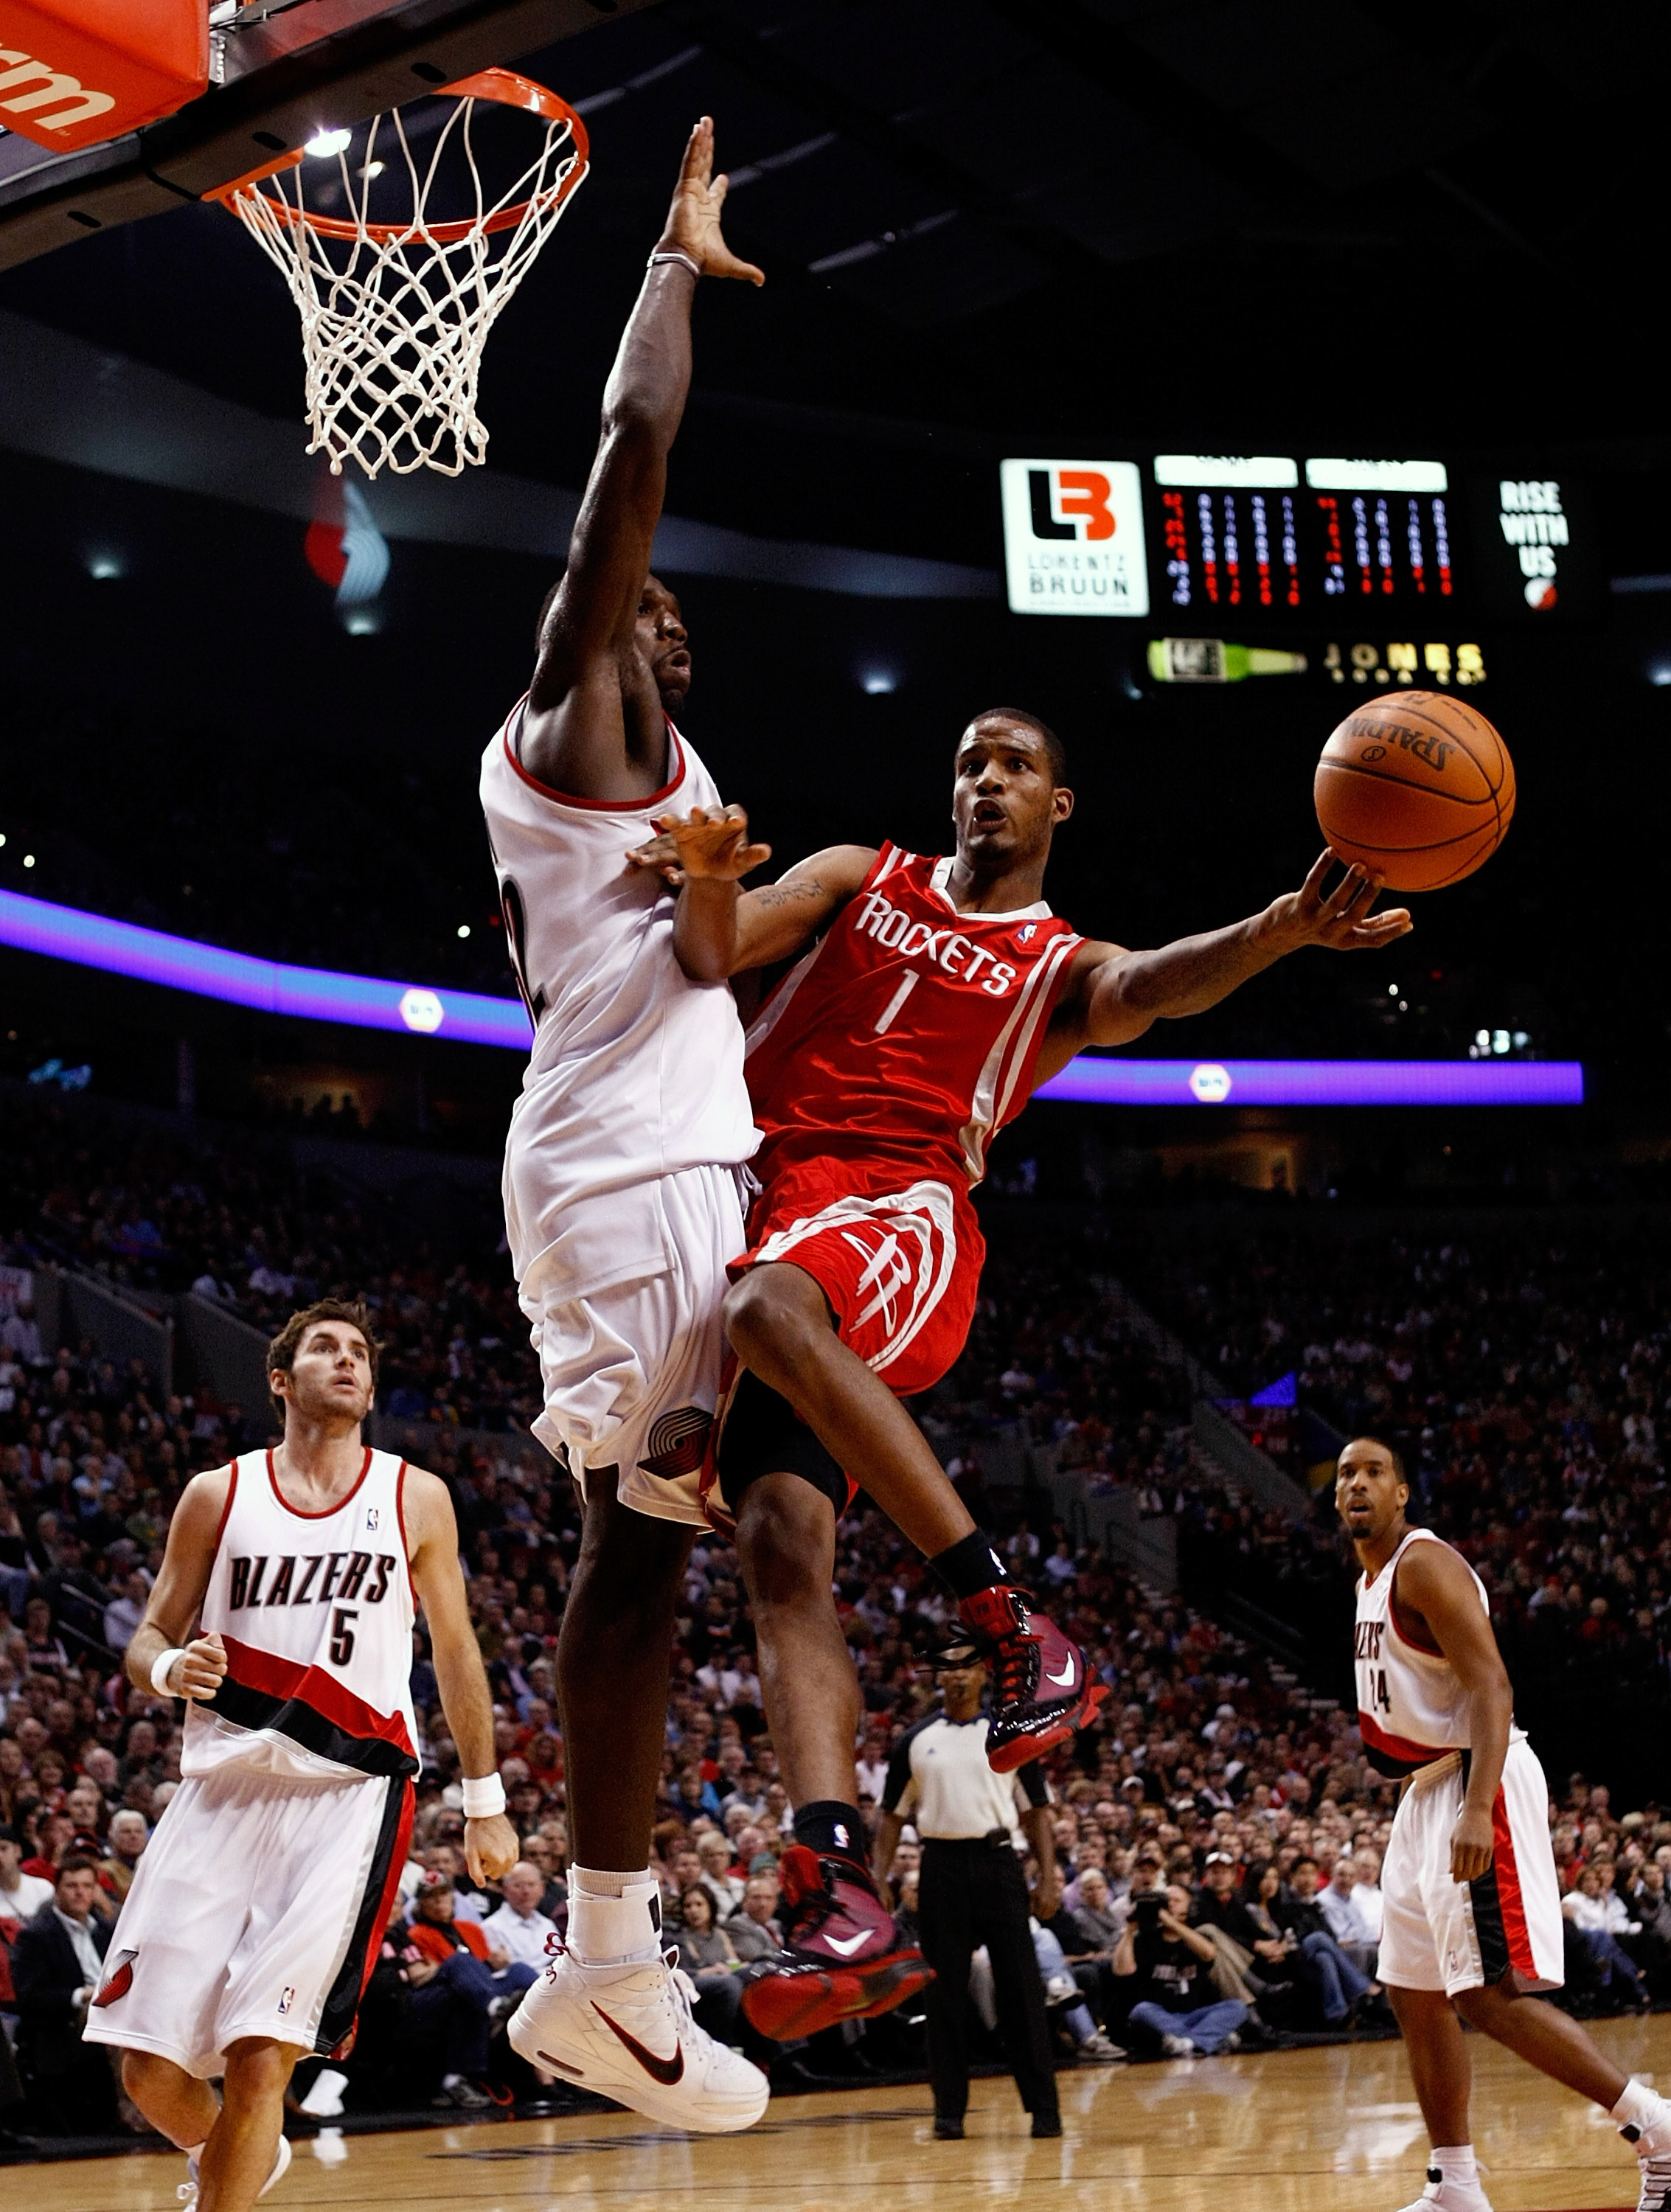 PORTLAND, OR - OCTOBER 27:  Trevor Ariza #1 of the Houston Rockets is guarded by Greg Oden #52 of the Portland Trail Blazers during the season opener on October 27, 2009 at the Rose Garden in Portland, Oregon. NOTE TO USER: User expressly acknowledges and